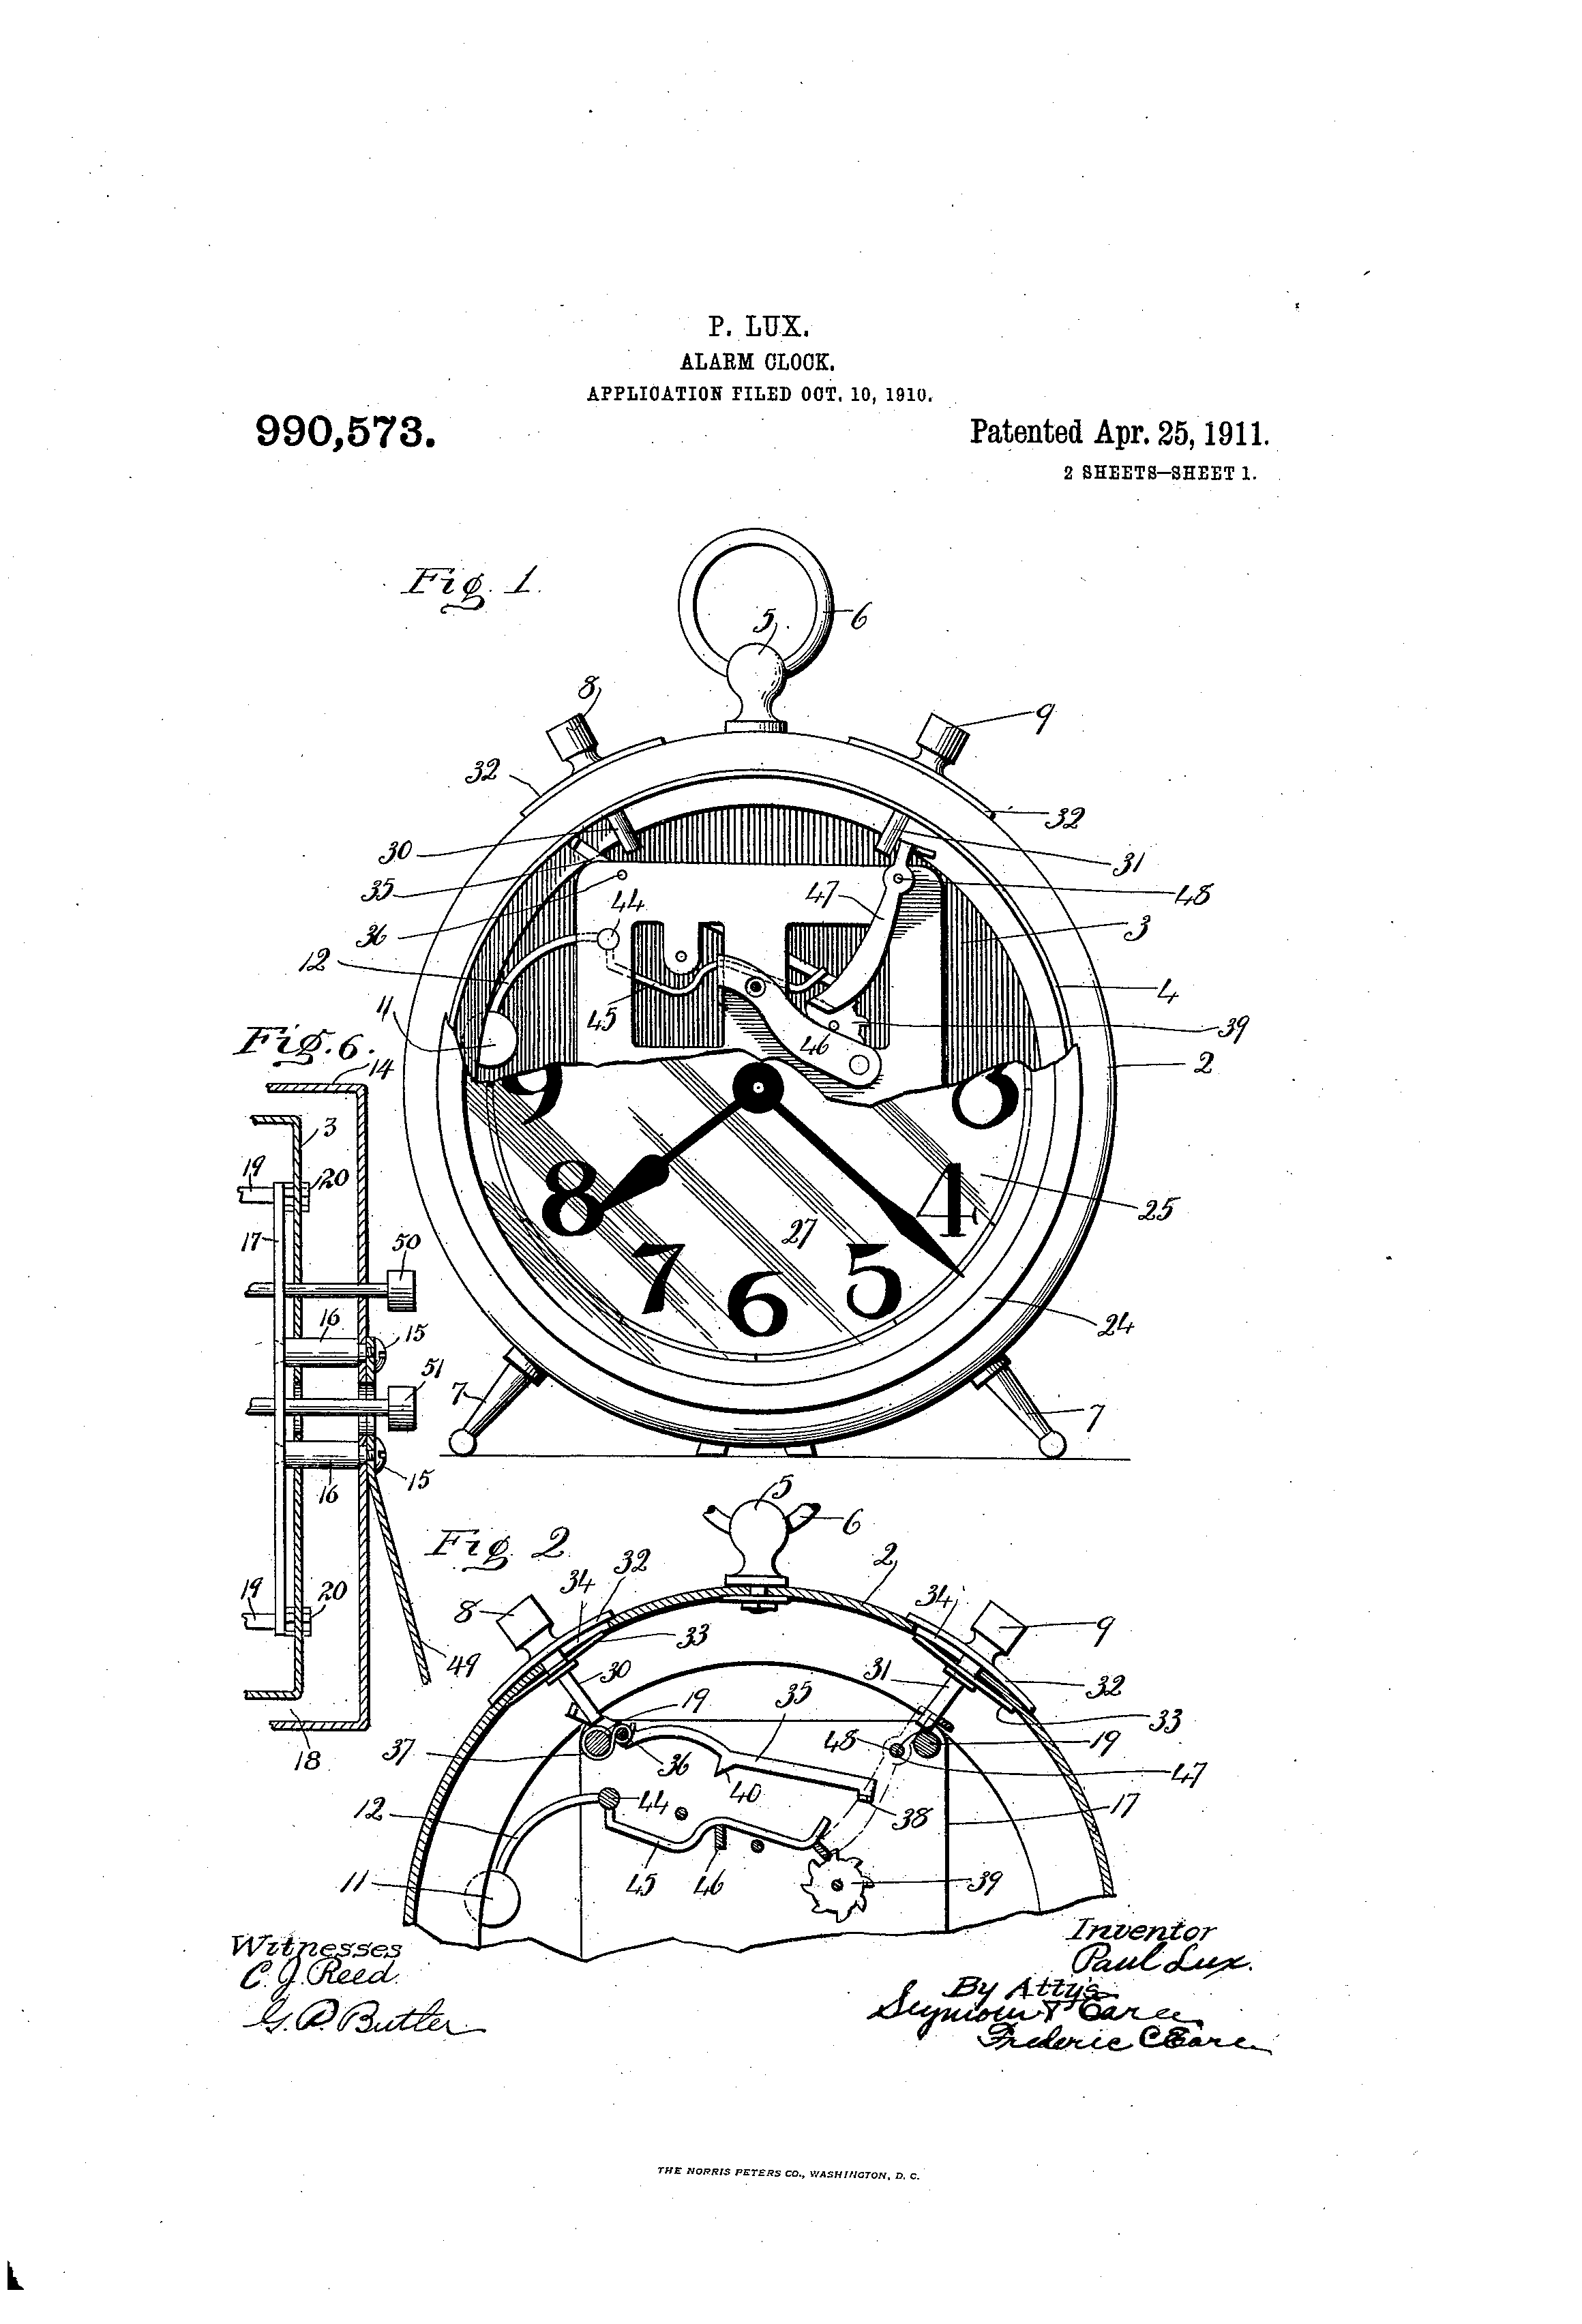 Patent Clock Alarm by Paul Lux Issued Apr 25, 1911